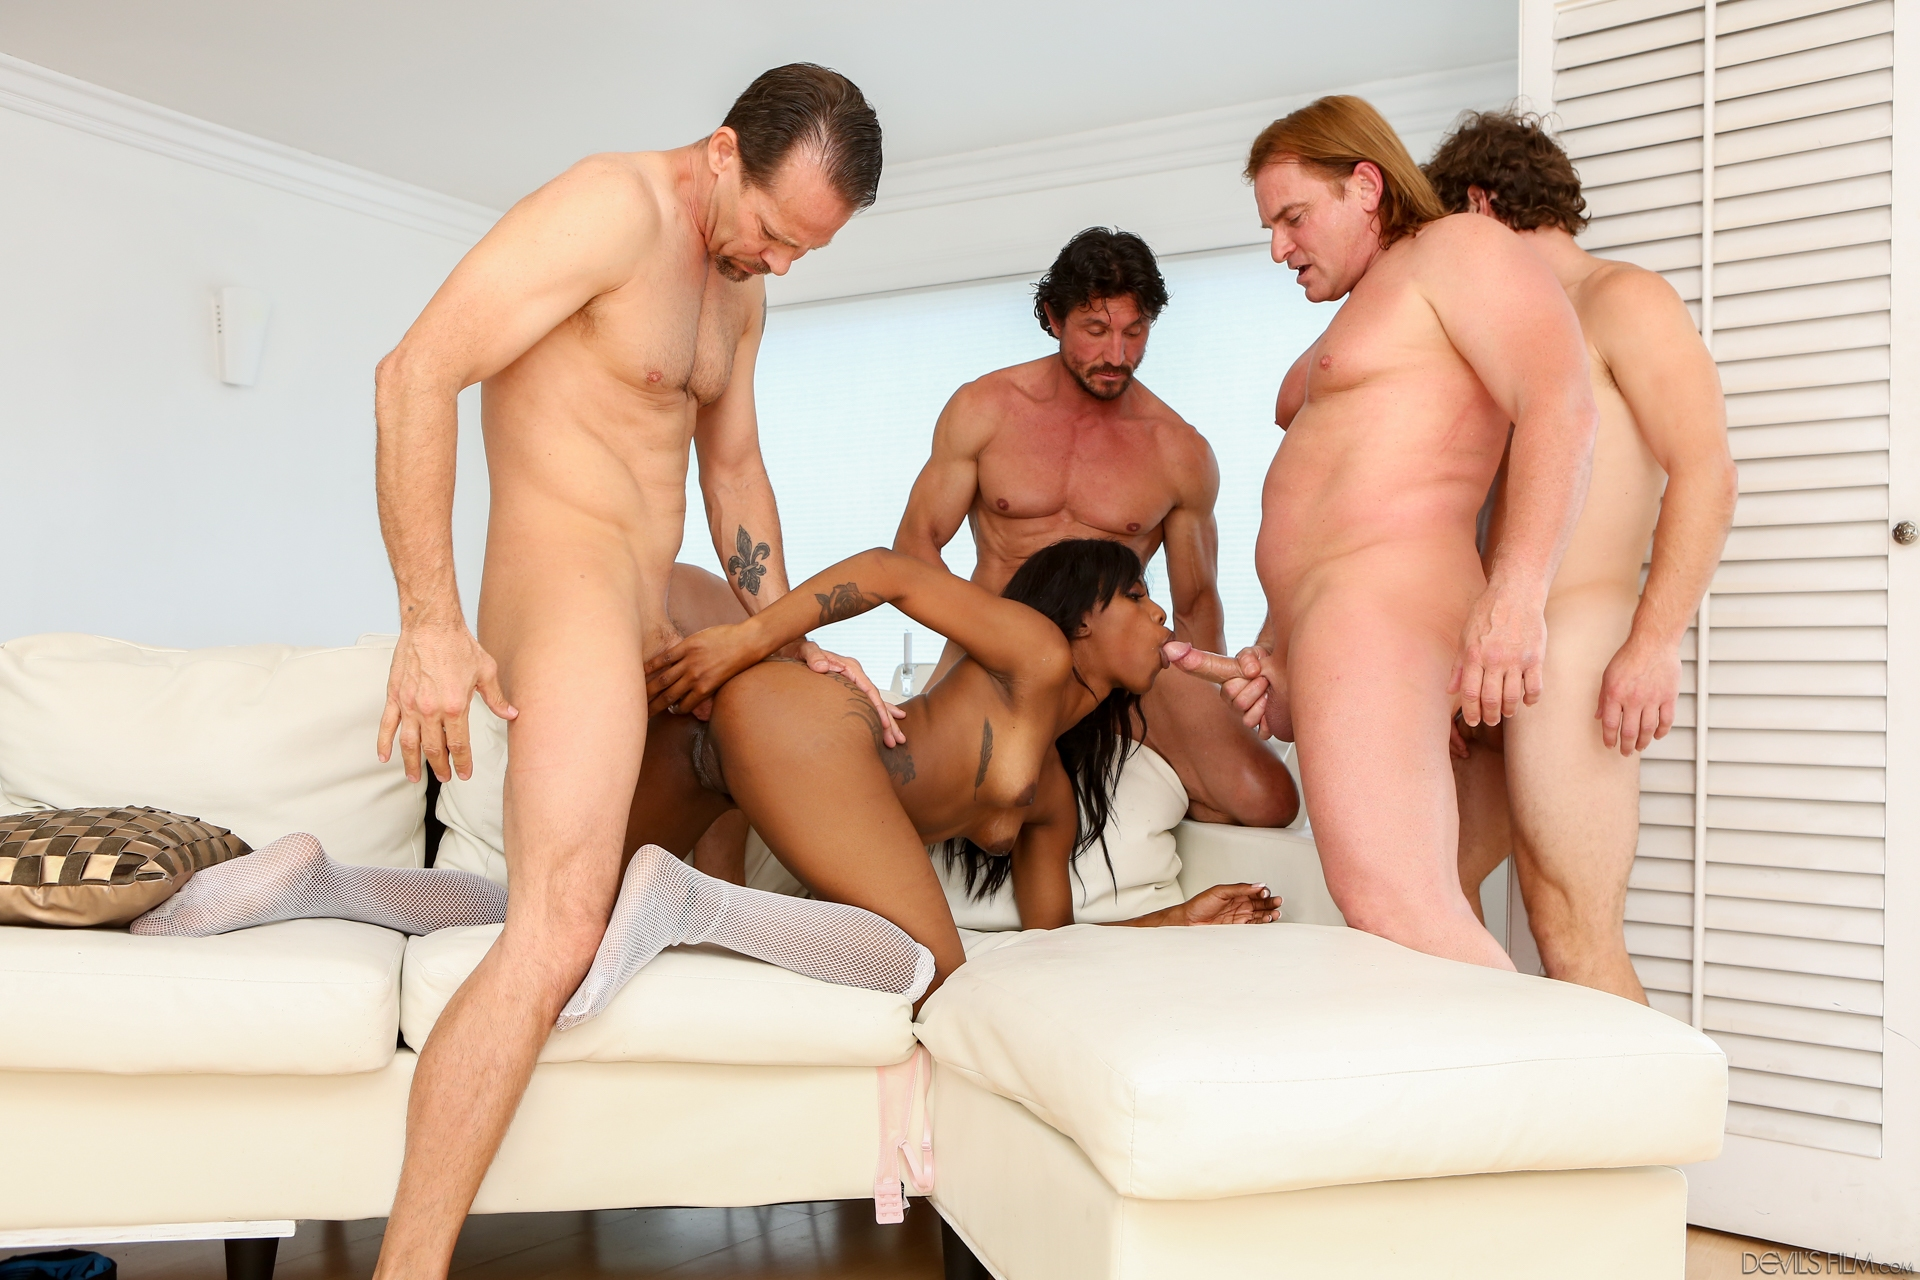 dark girls geting fucked